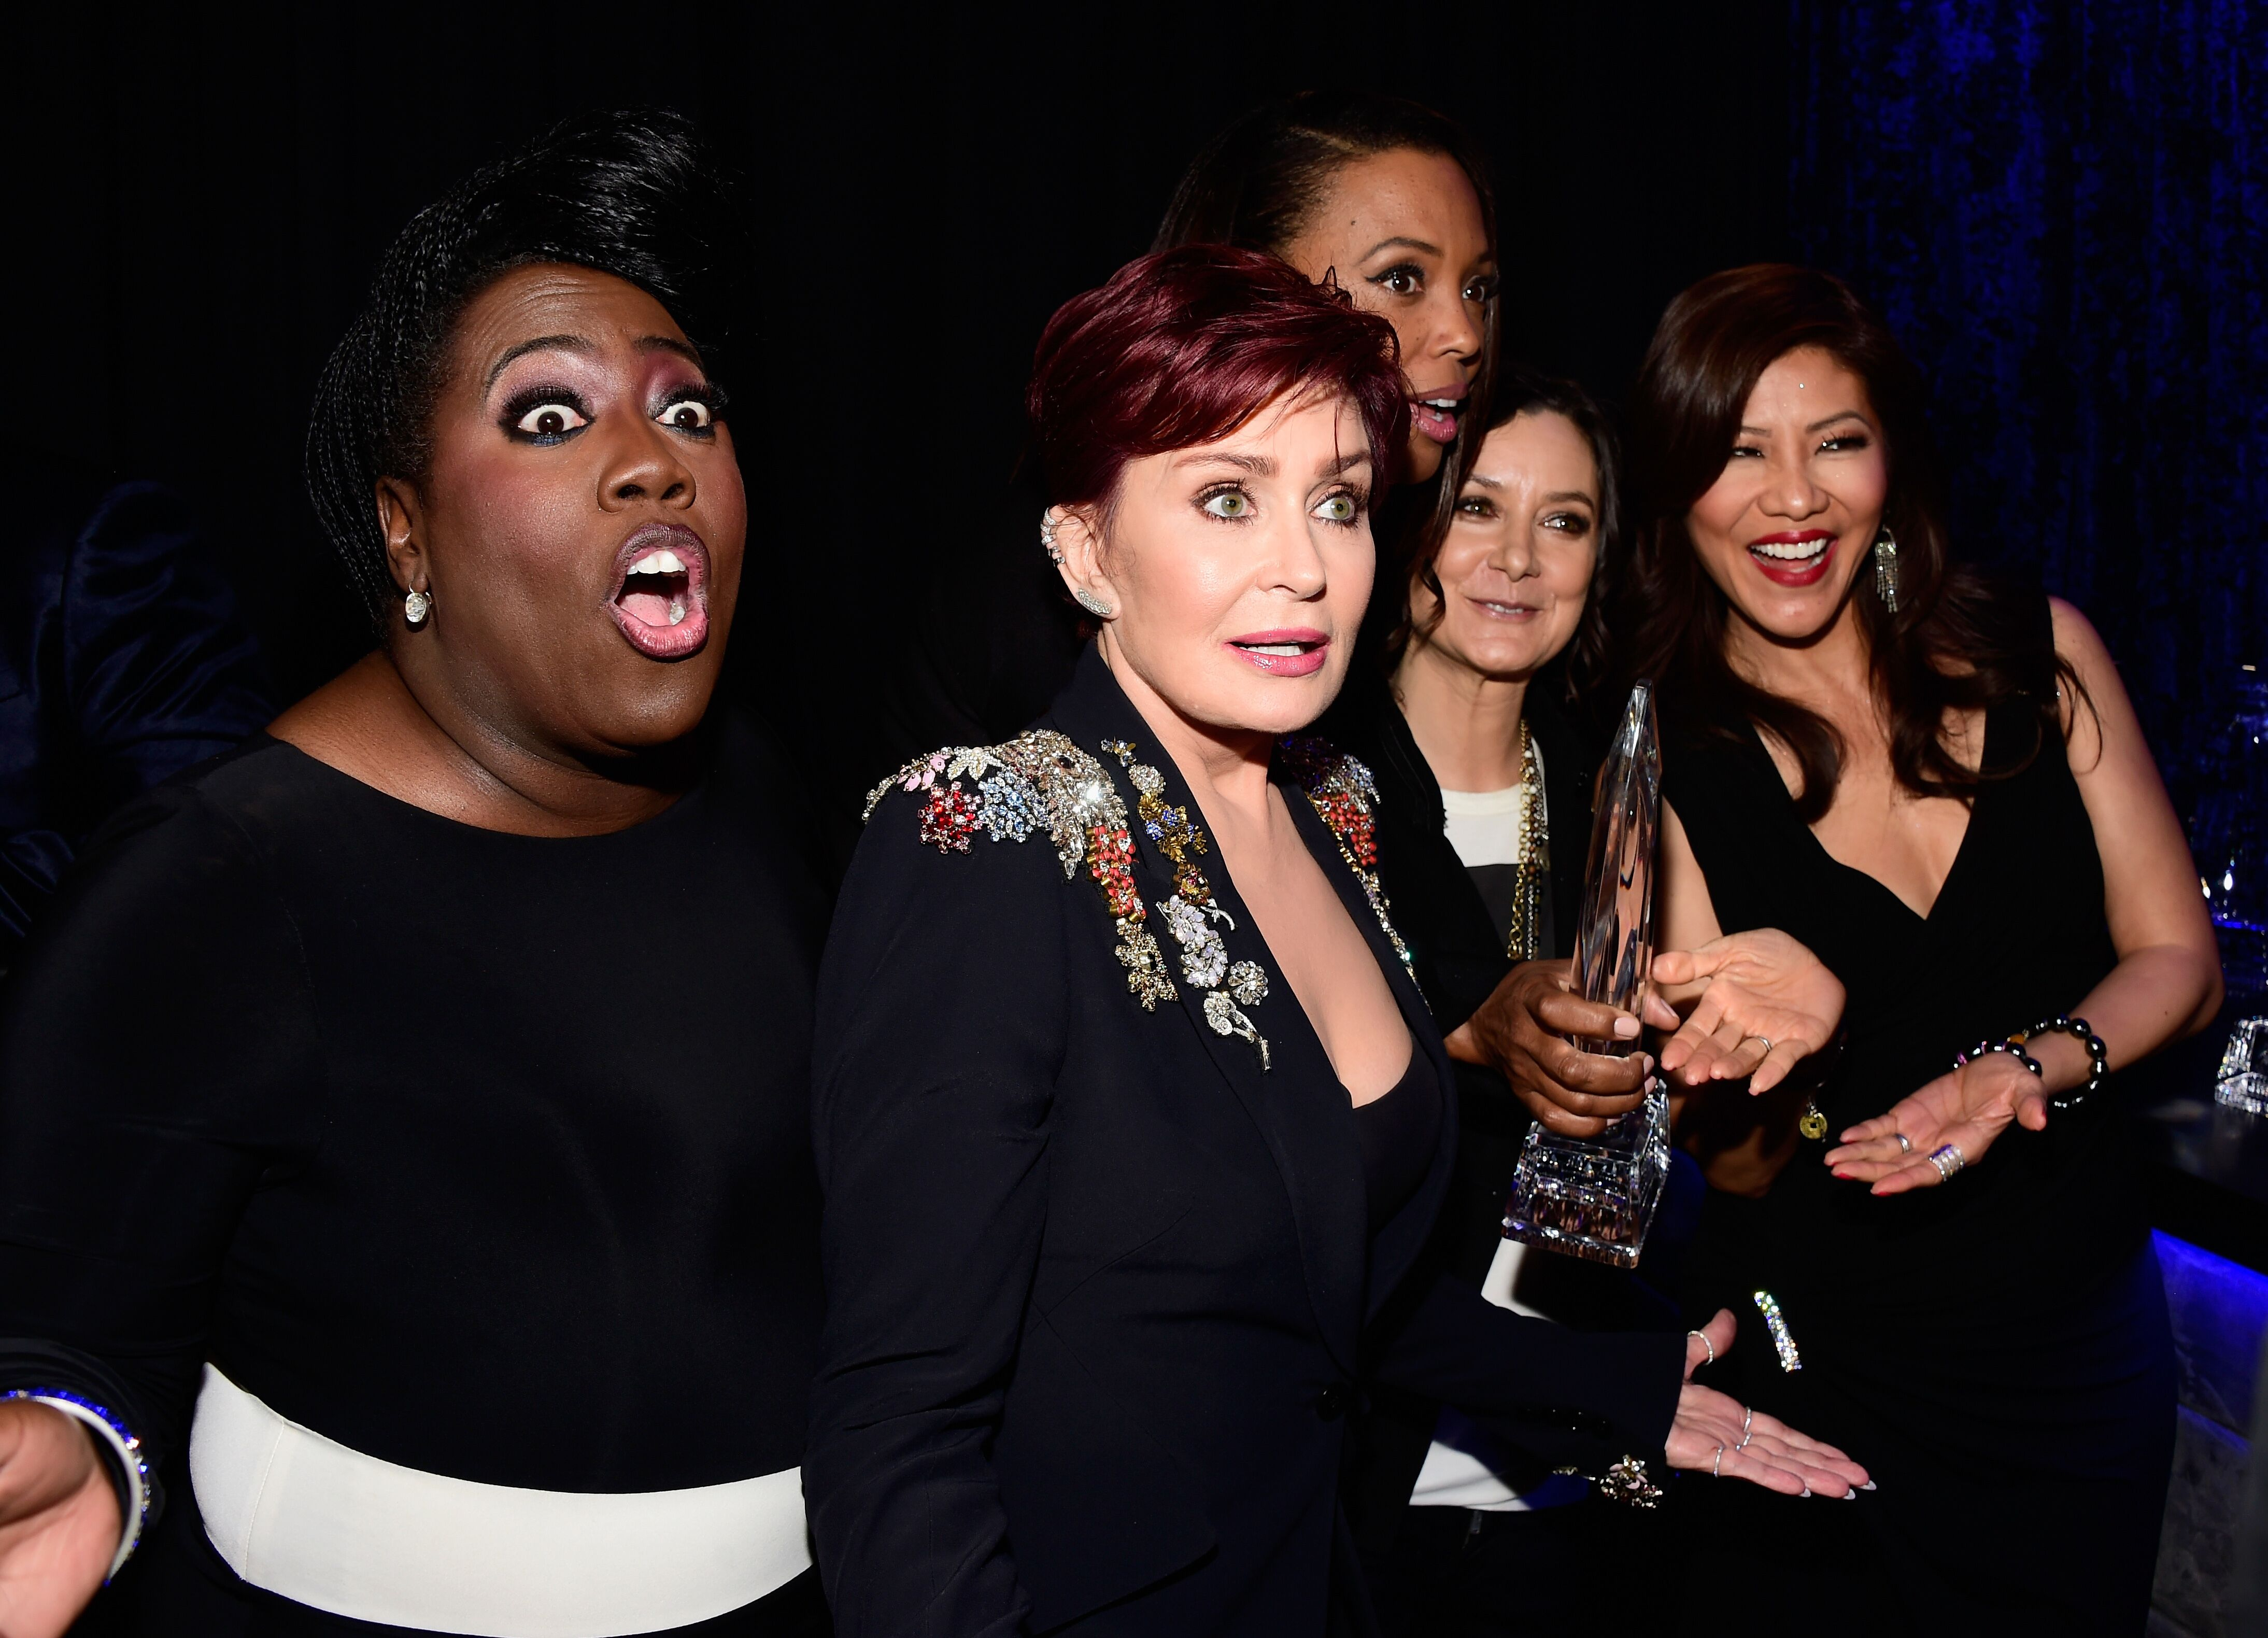 Sheryl Underwood, Sharon Osbourne, Aisha Tyler, Sara Gilbert and Julie Chen with the award for Favorite Daytime TV Hosting Team at the People's Choice Awards 2016 | Source: Getty Images